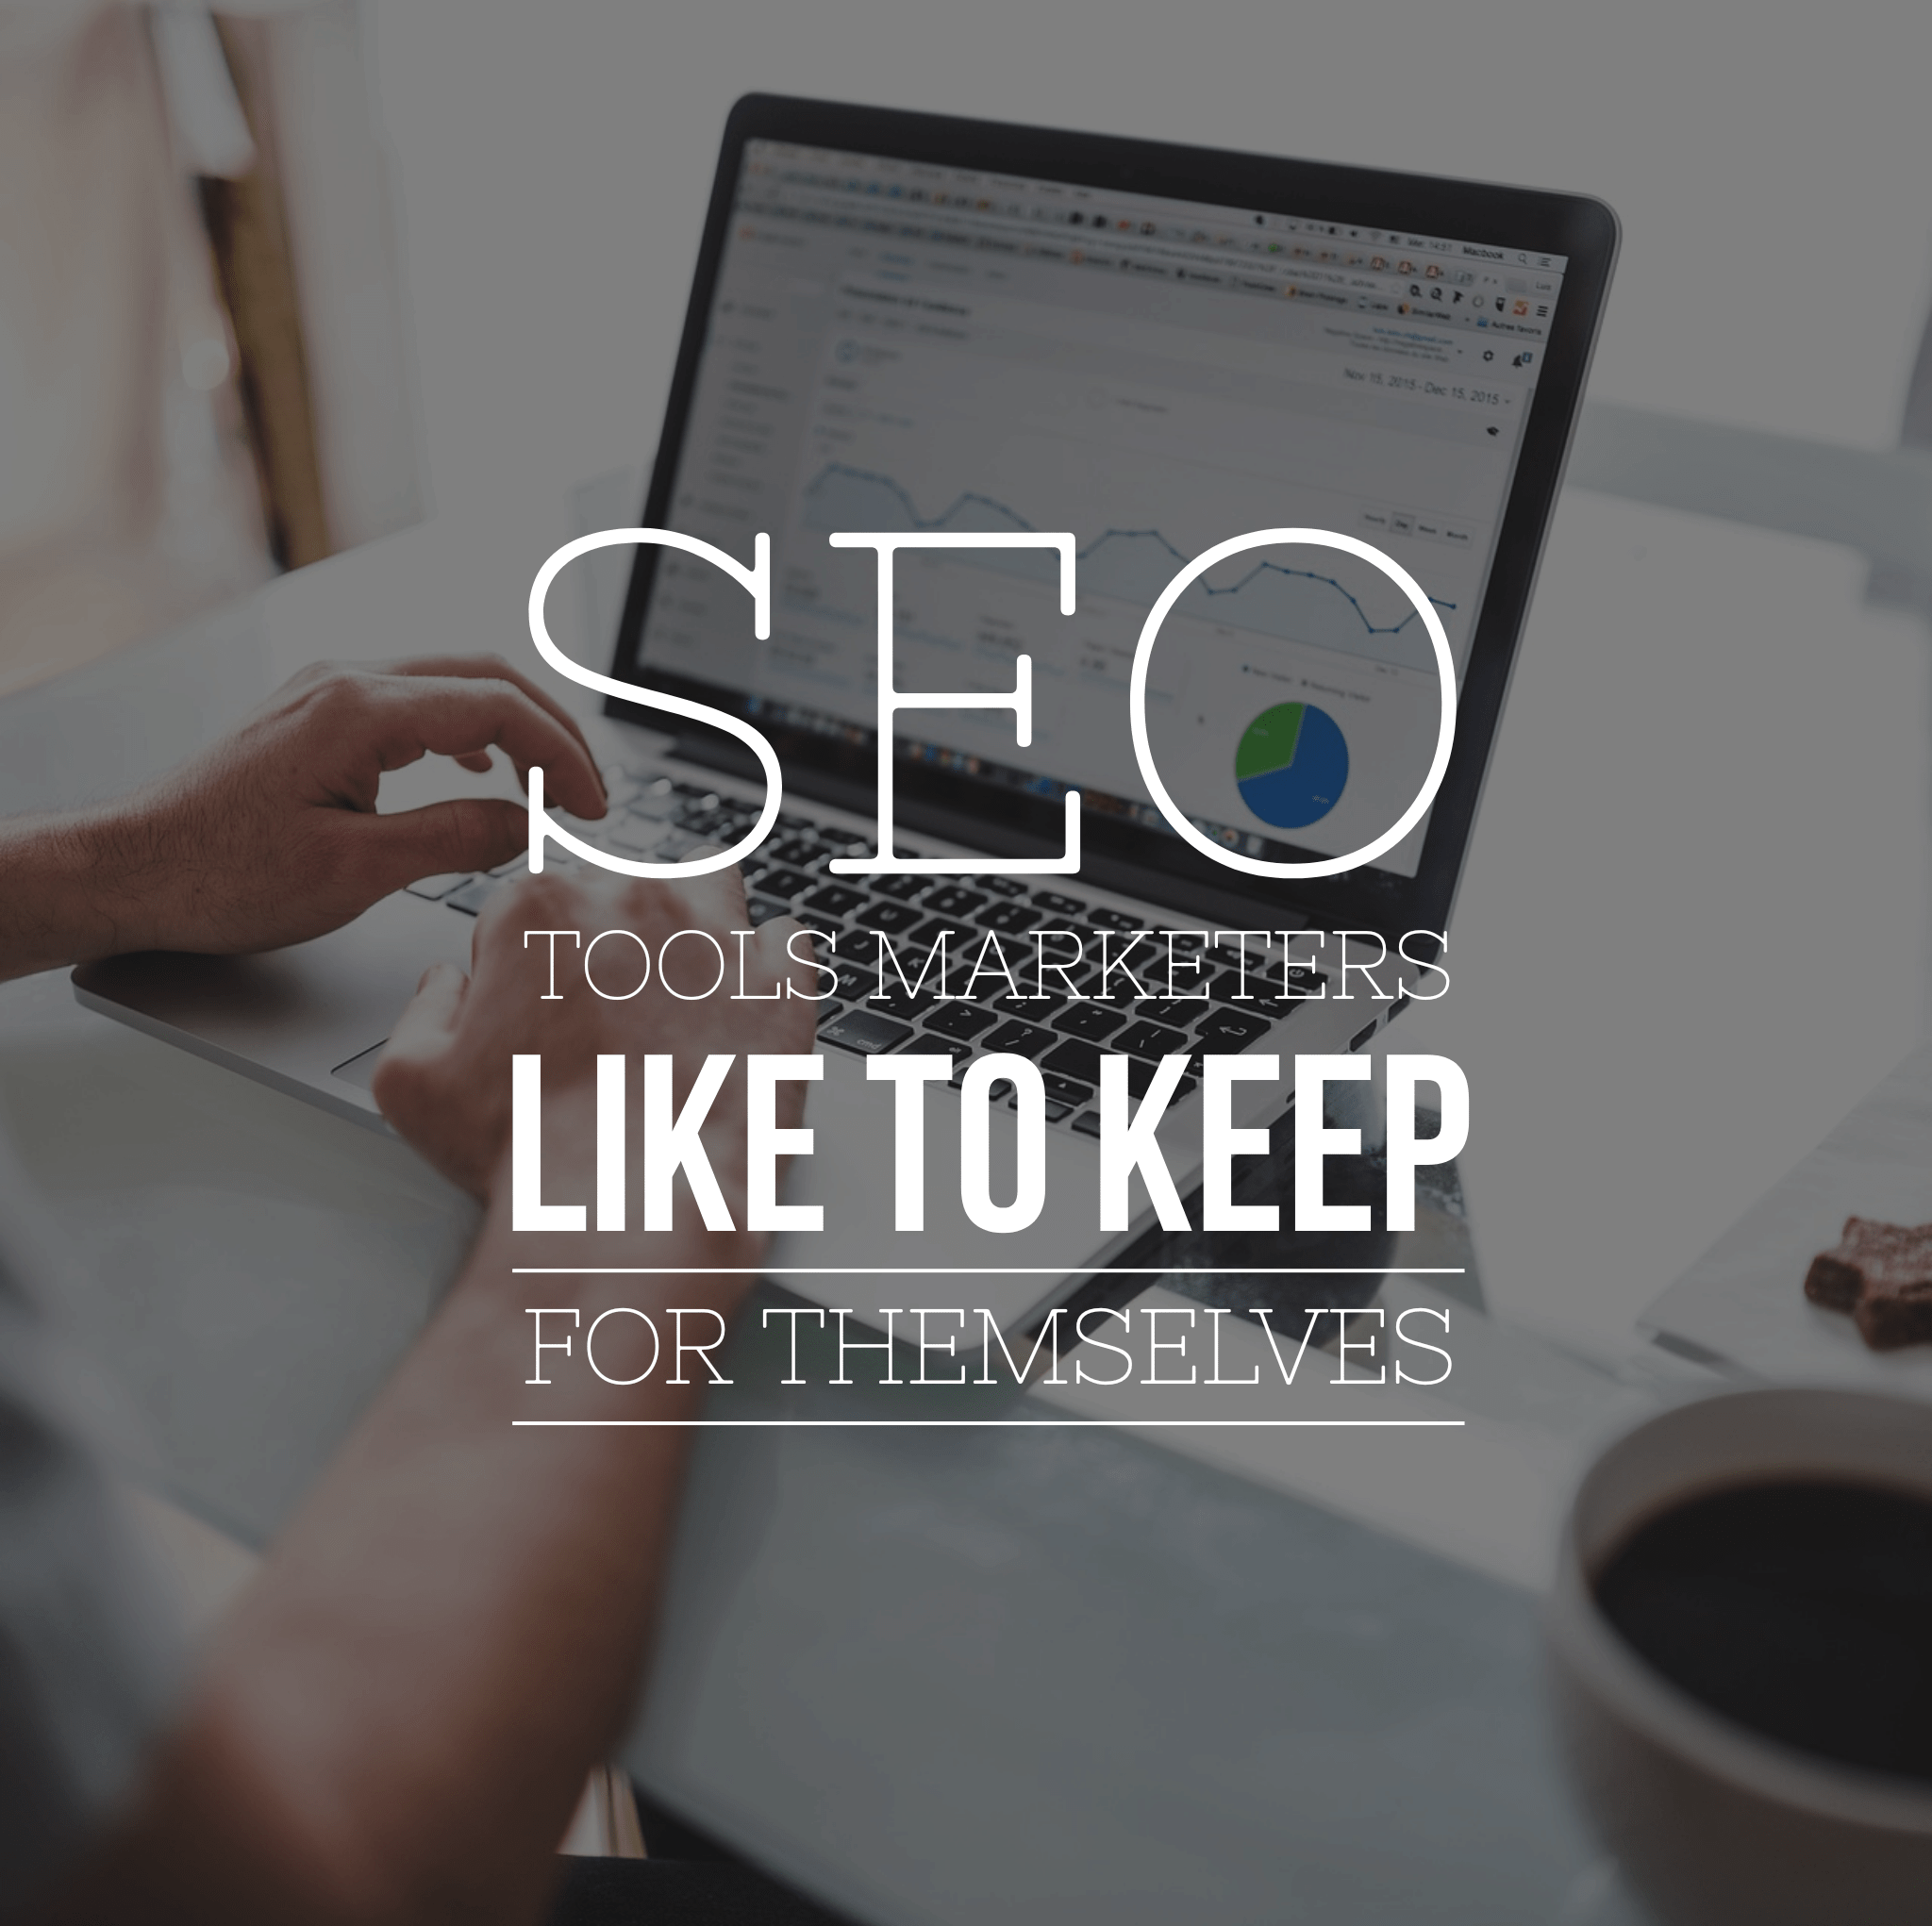 3 SEO Tools Marketers Like to Keep for Themselves